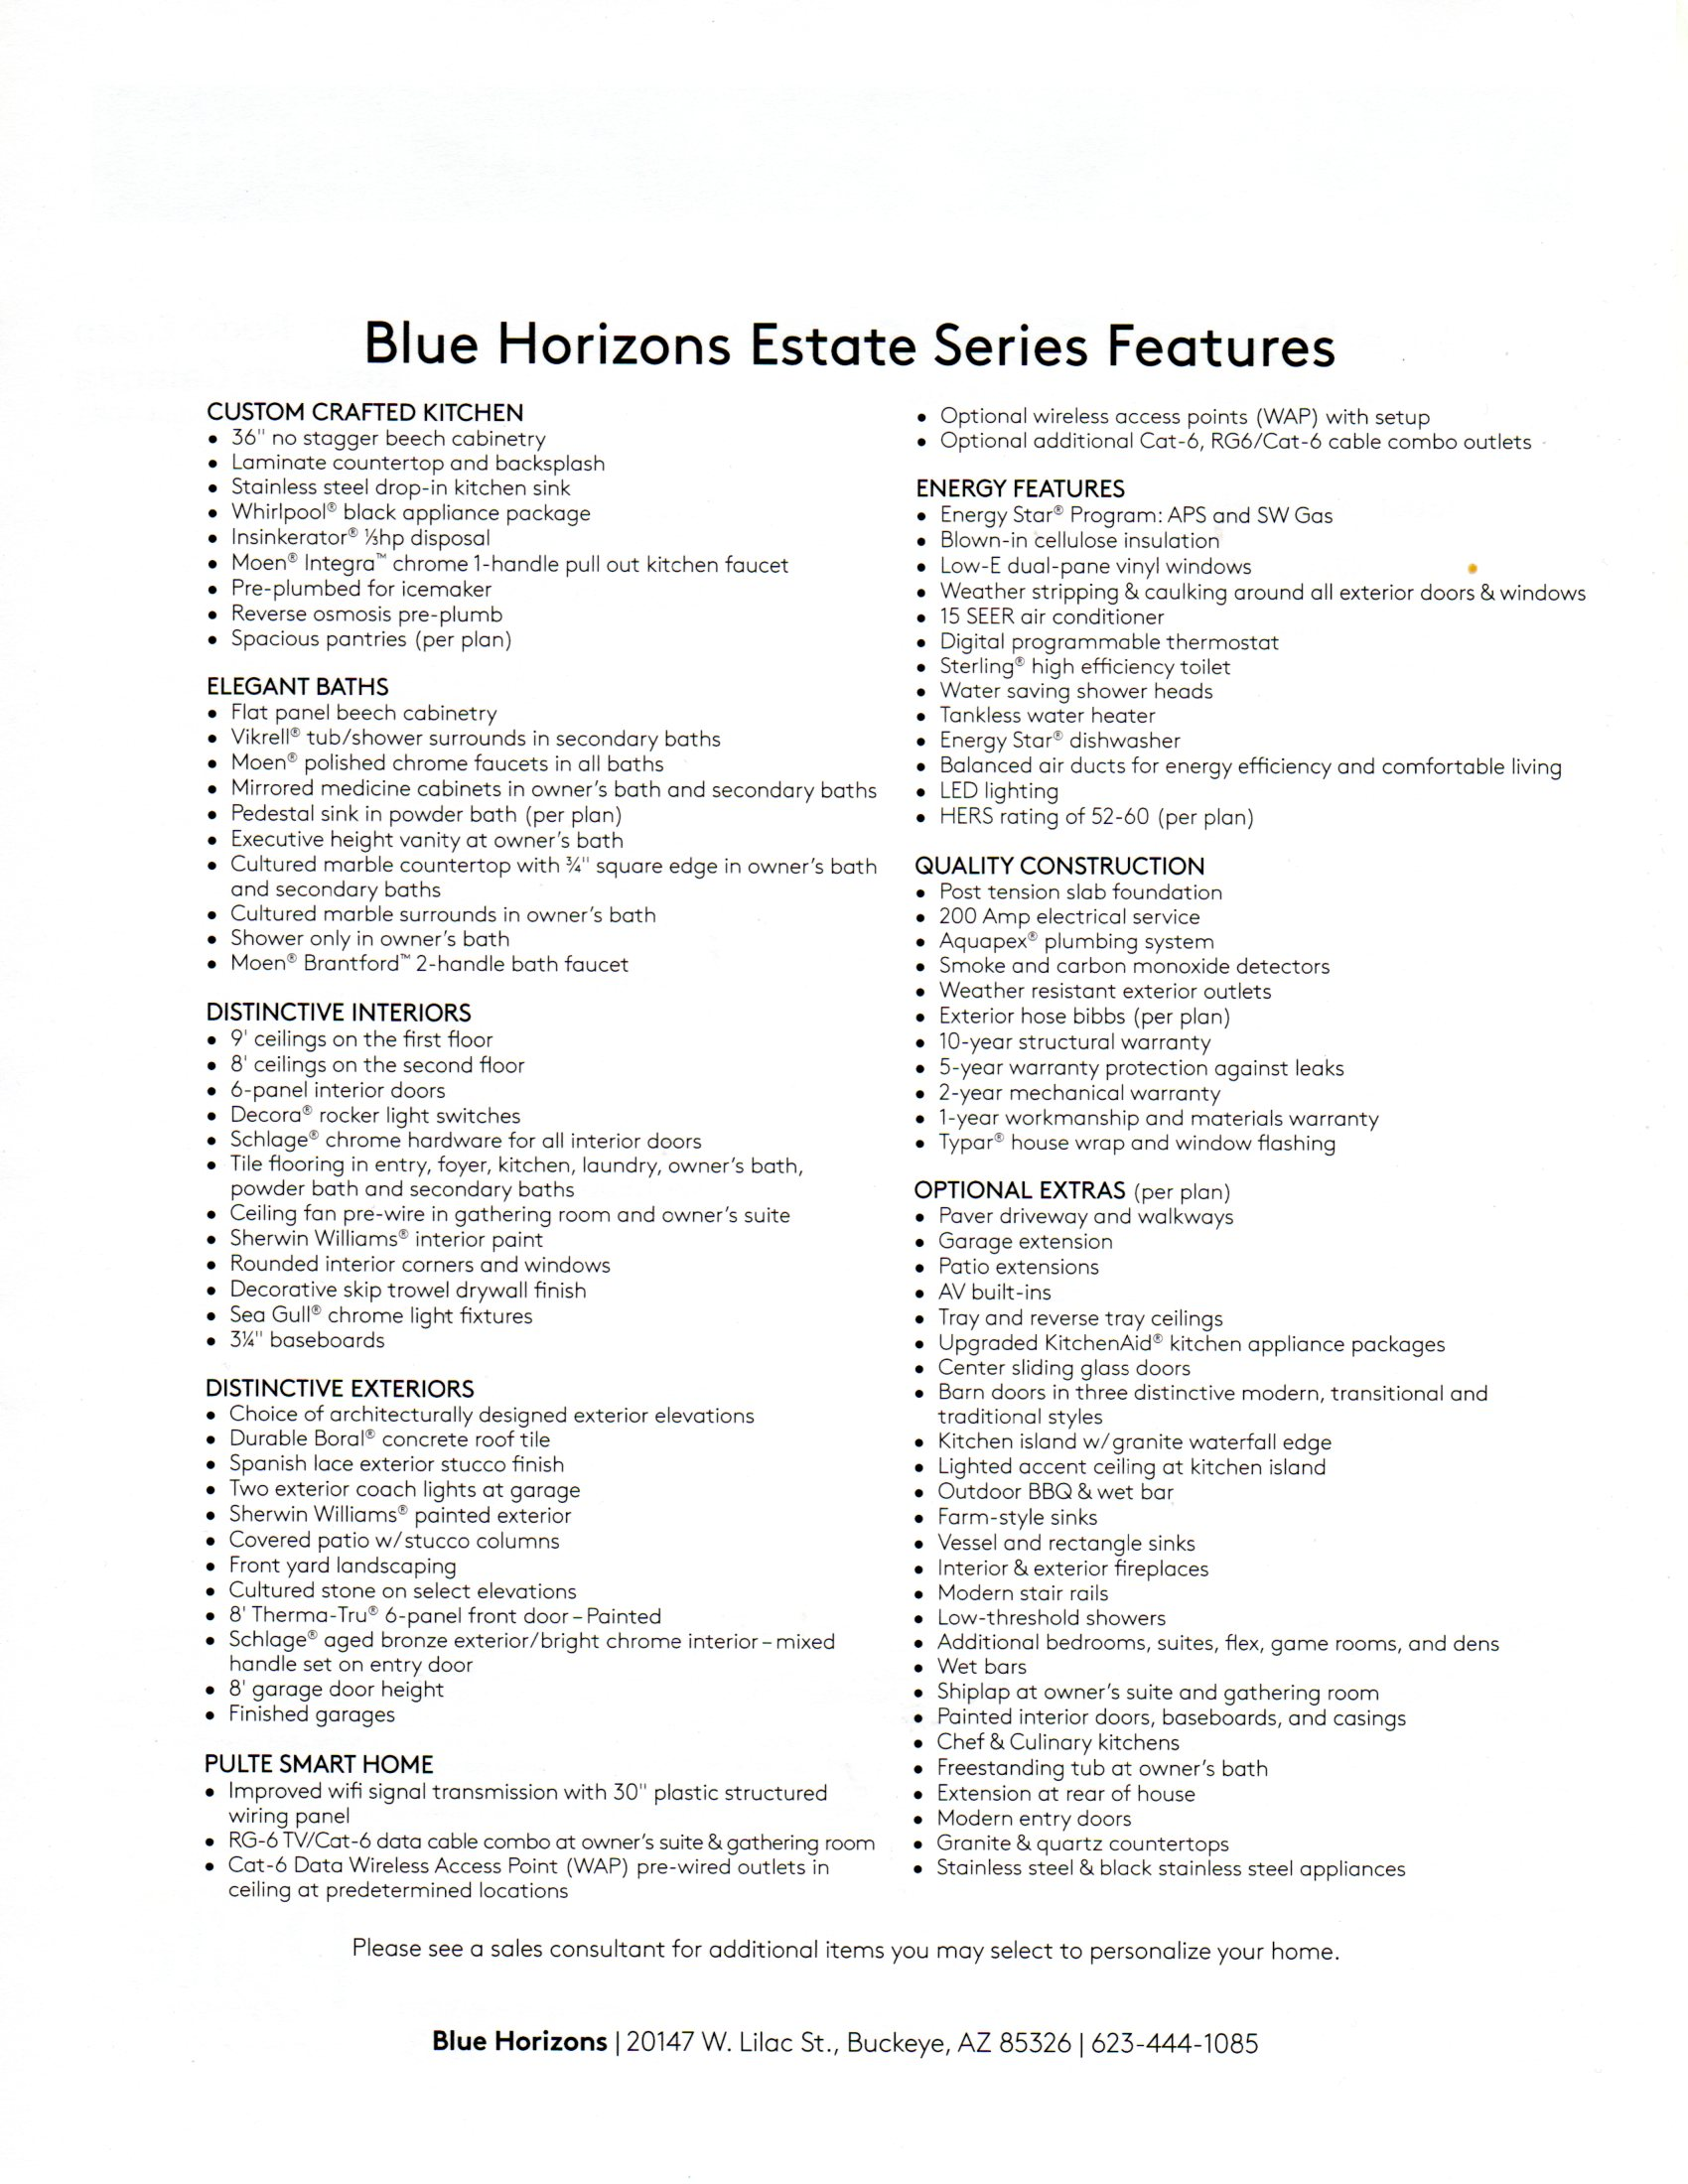 STANDARD INCLUDED FEATURES - ESTATE SERIES